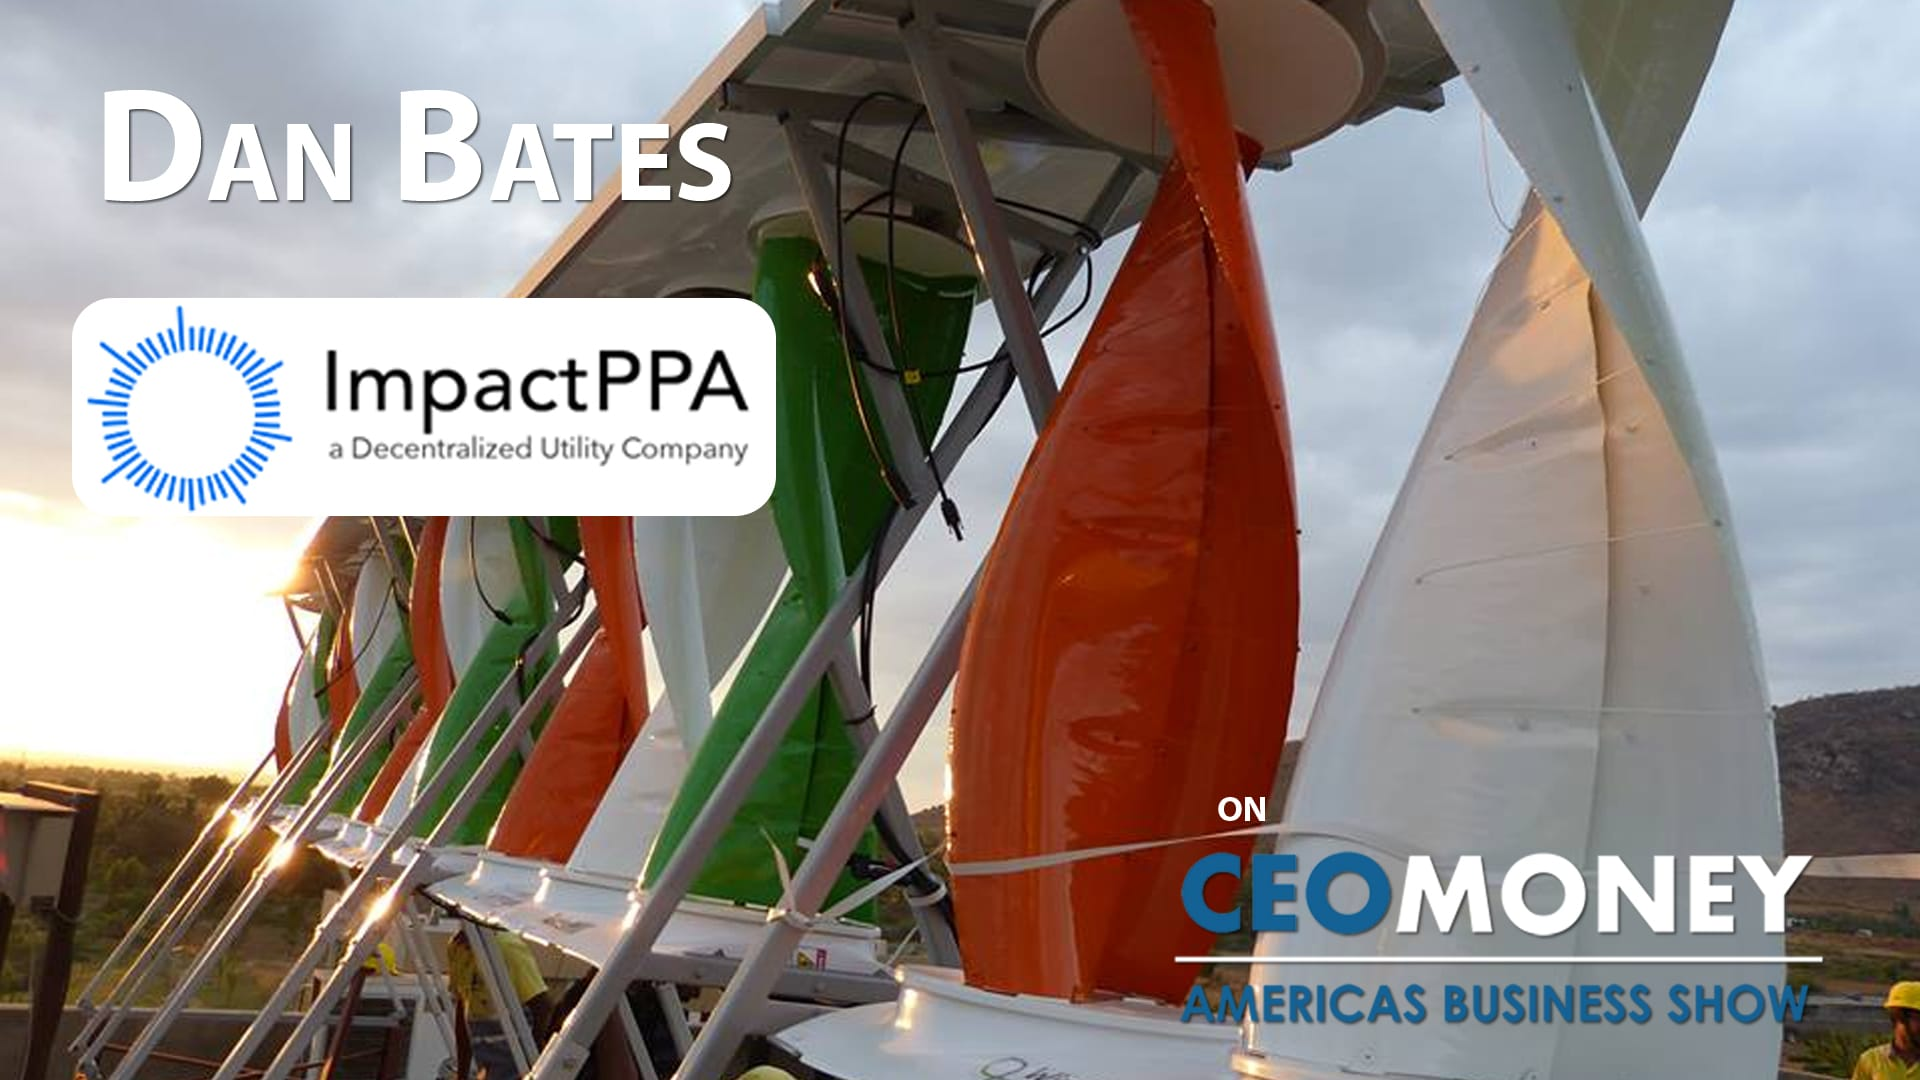 ImpactPPA is using blockchain to bring renewable energy solutions to emerging markets in 35 countries